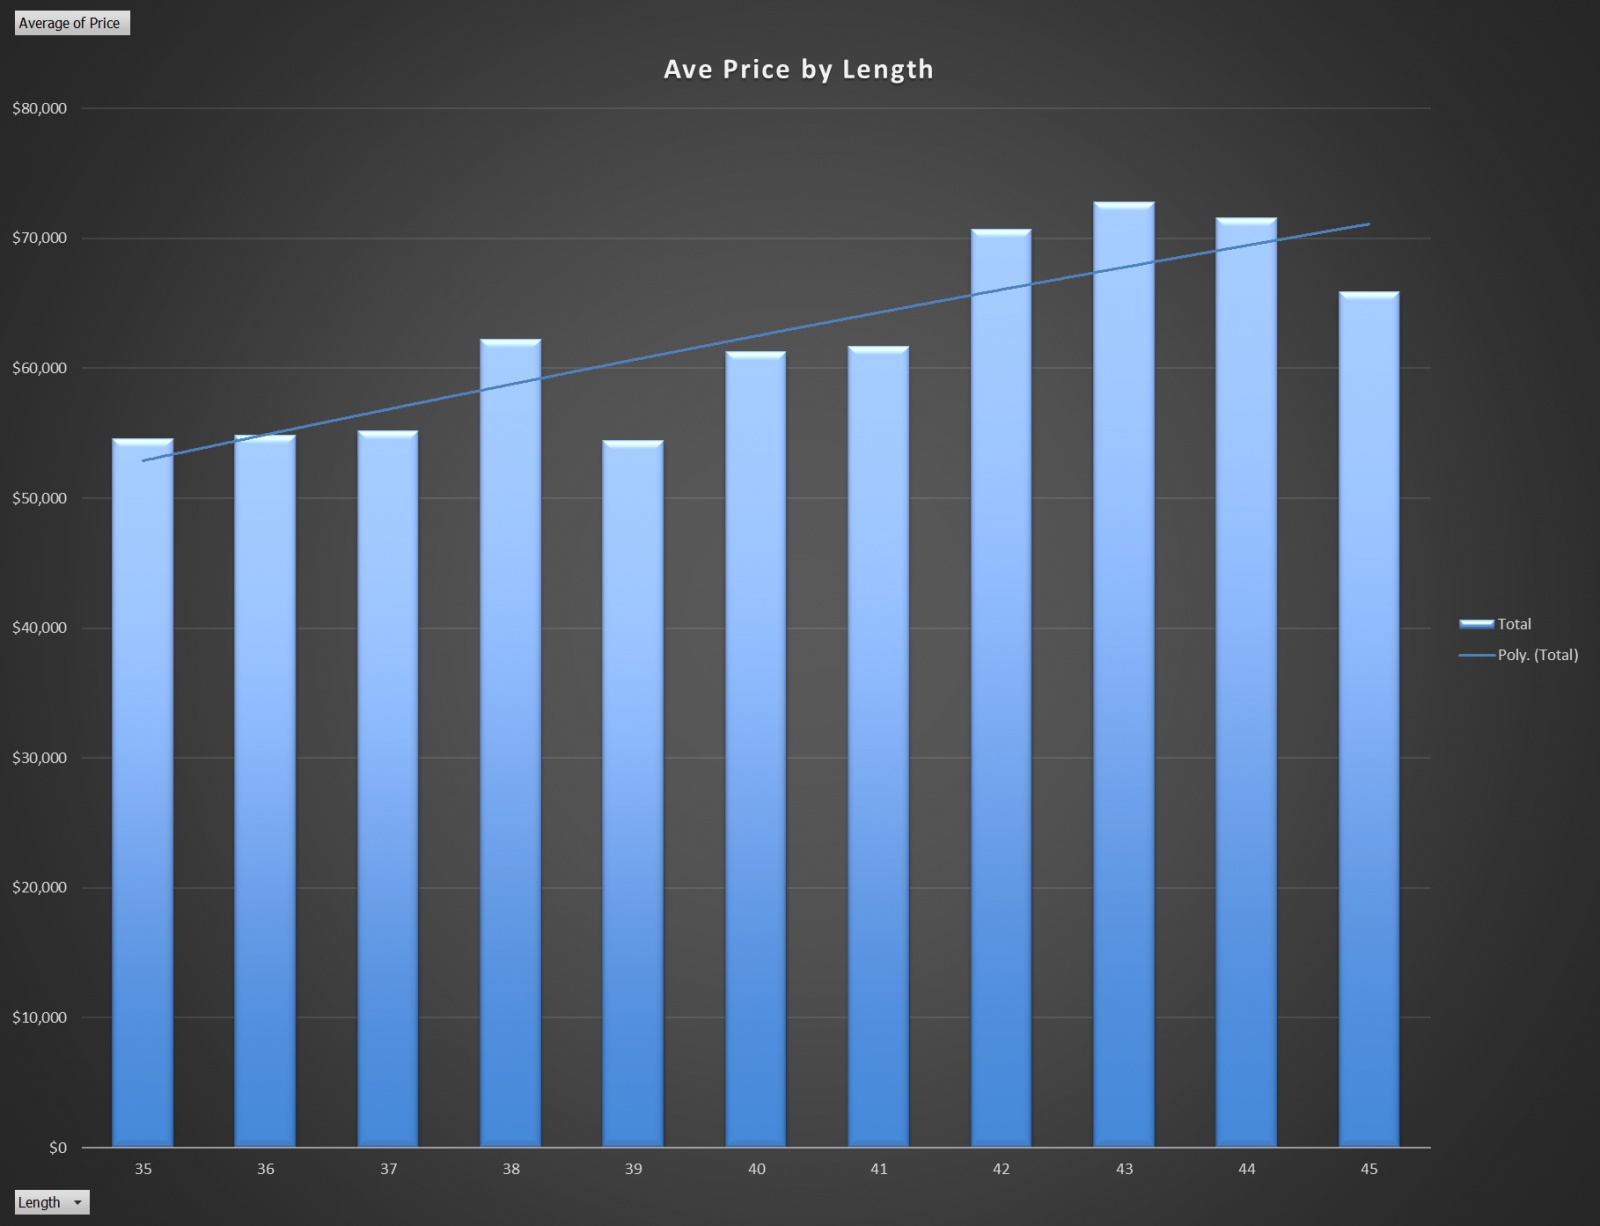 Click image for larger version  Name:Ave Price by Length.jpg Views:177 Size:220.7 KB ID:185255